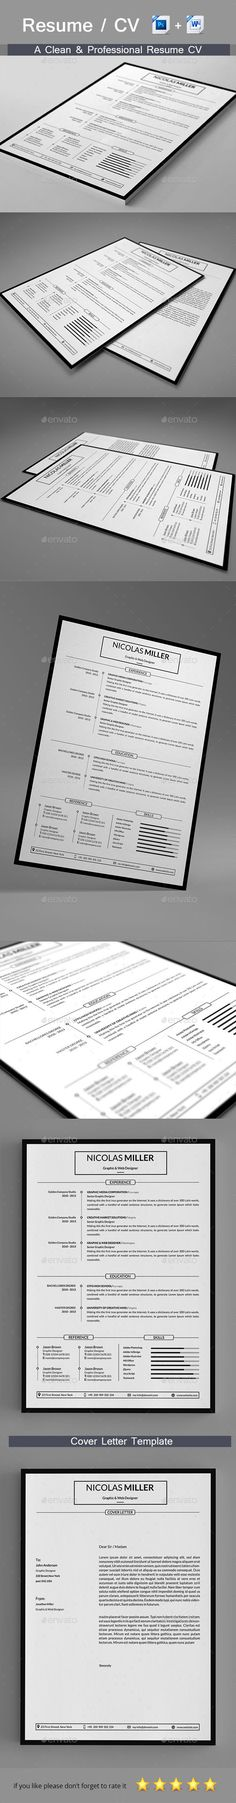 Linkedin Resume Template For Microsoft Word Office | Our Creative